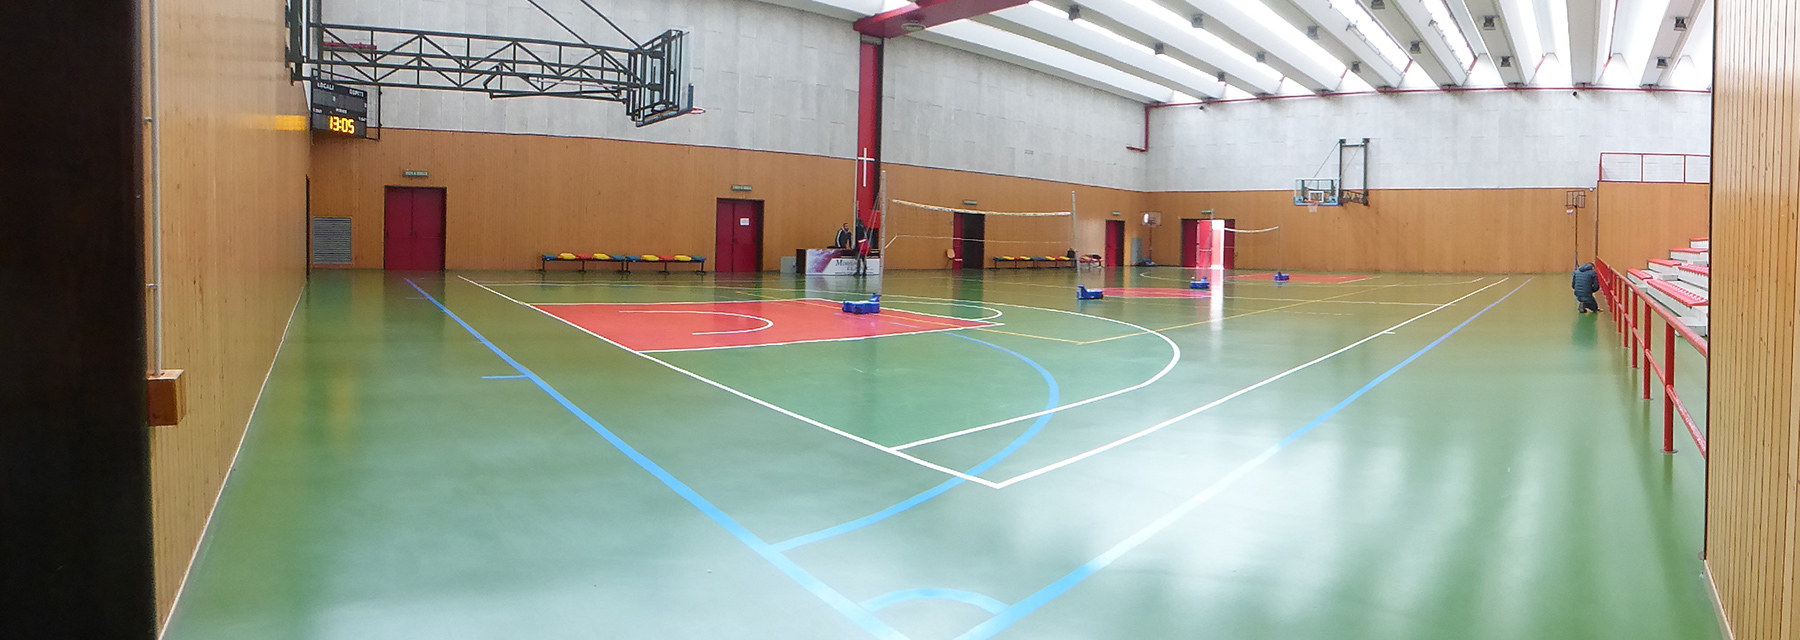 Istrana sports facility with rubber floor